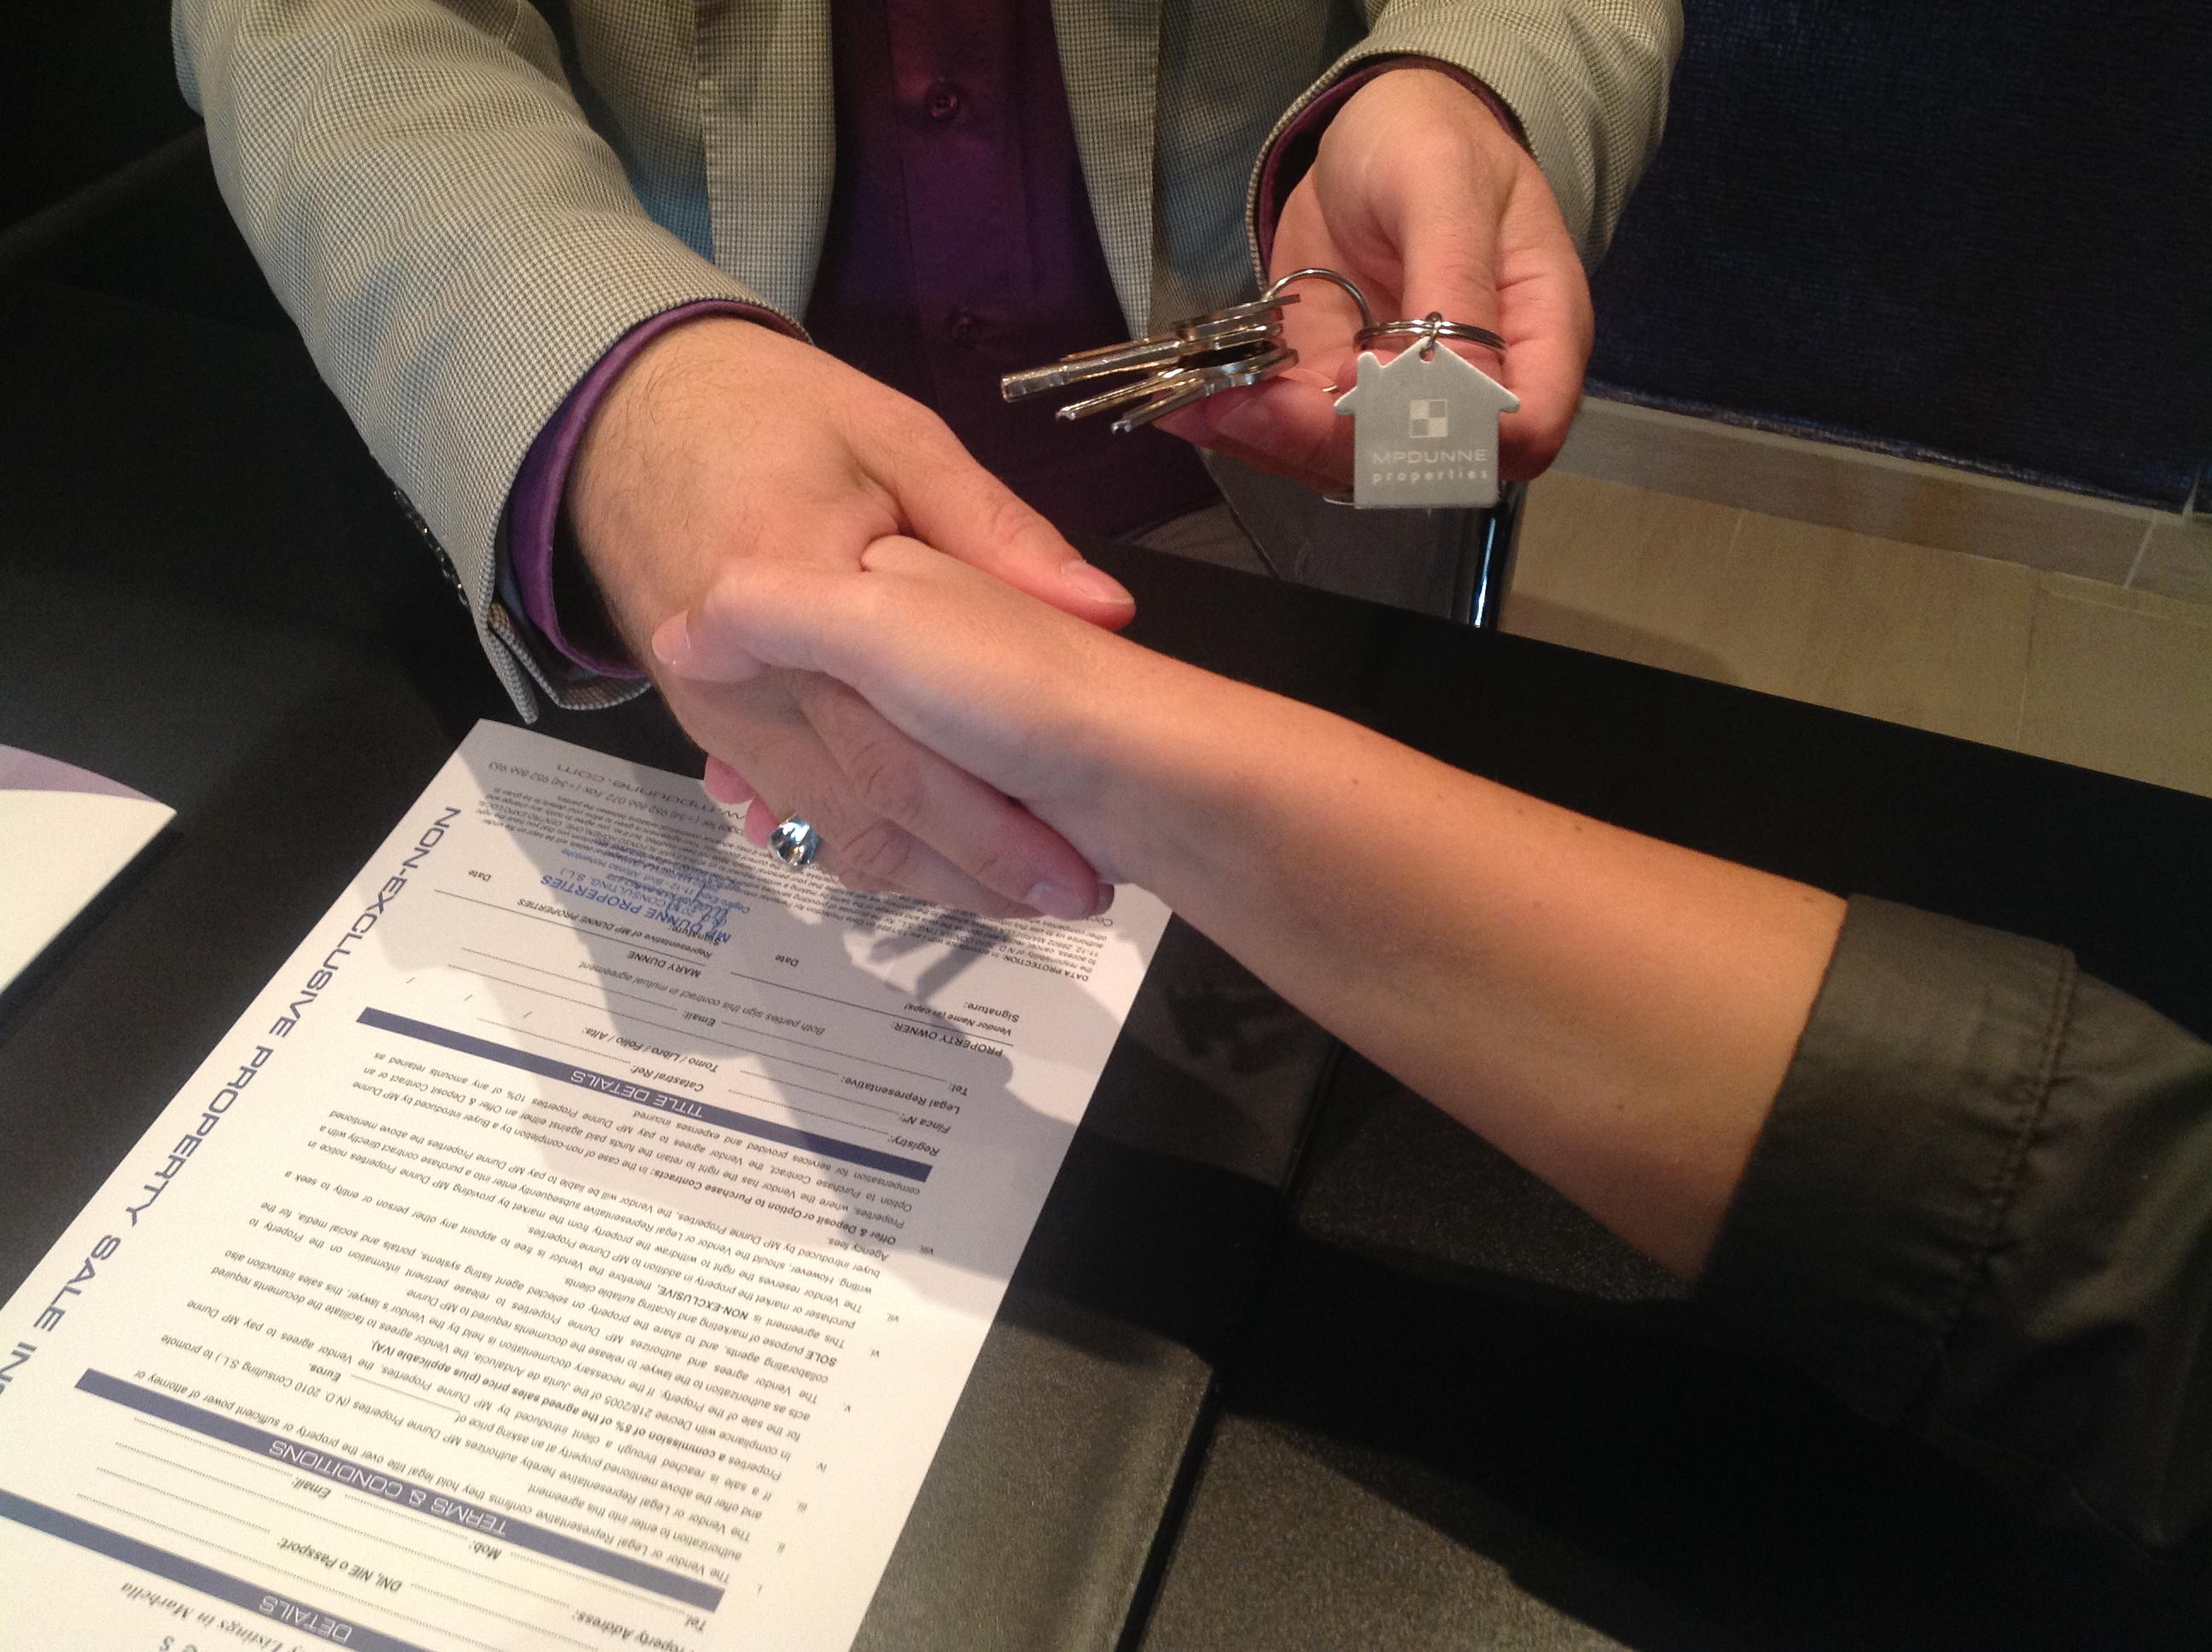 Shaking hands over buying real estate property with MP Dunne Properties Marbella